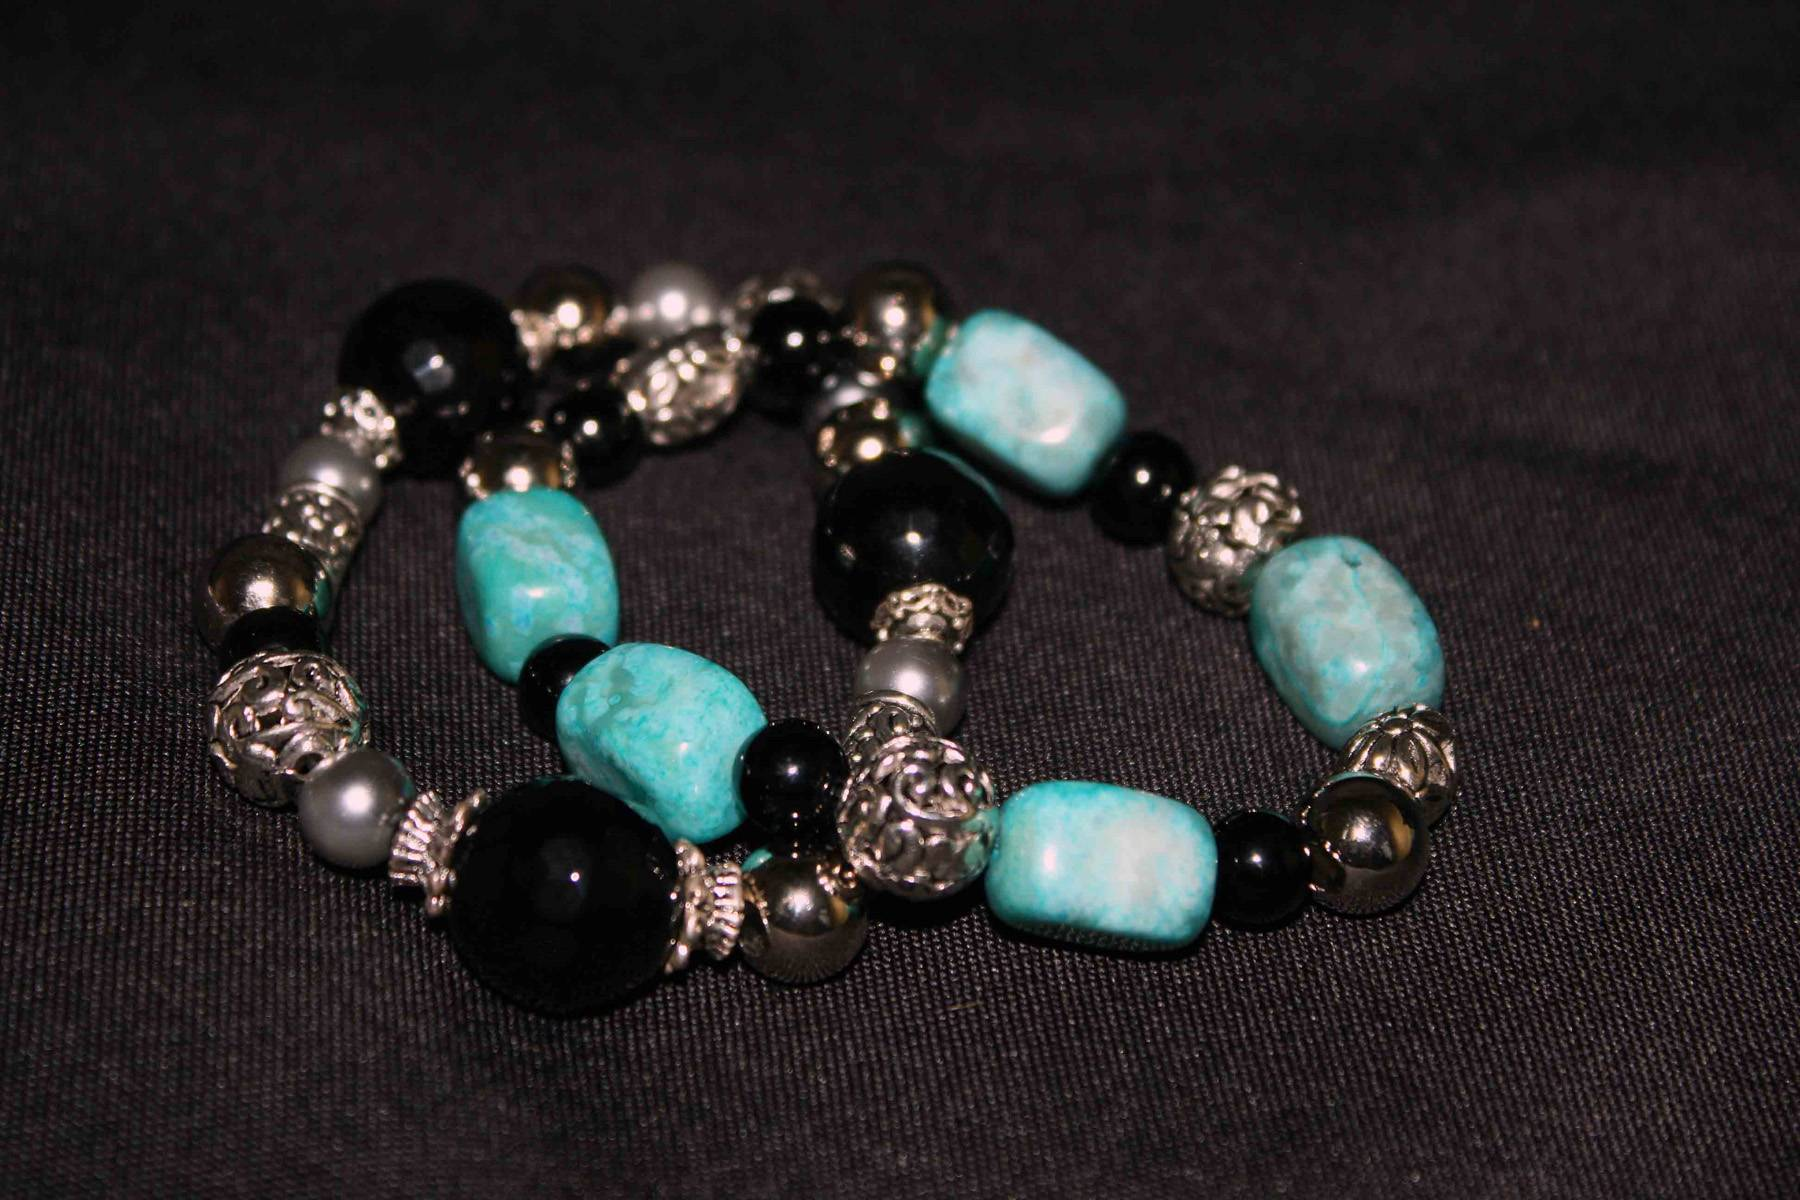 The turquoise and black agate bracelet is an example of the one that participants will create in the Stretch Bead Bracelet class with Britta Renwick on January 25, 2013 at Gallery 200 in West Chicago.